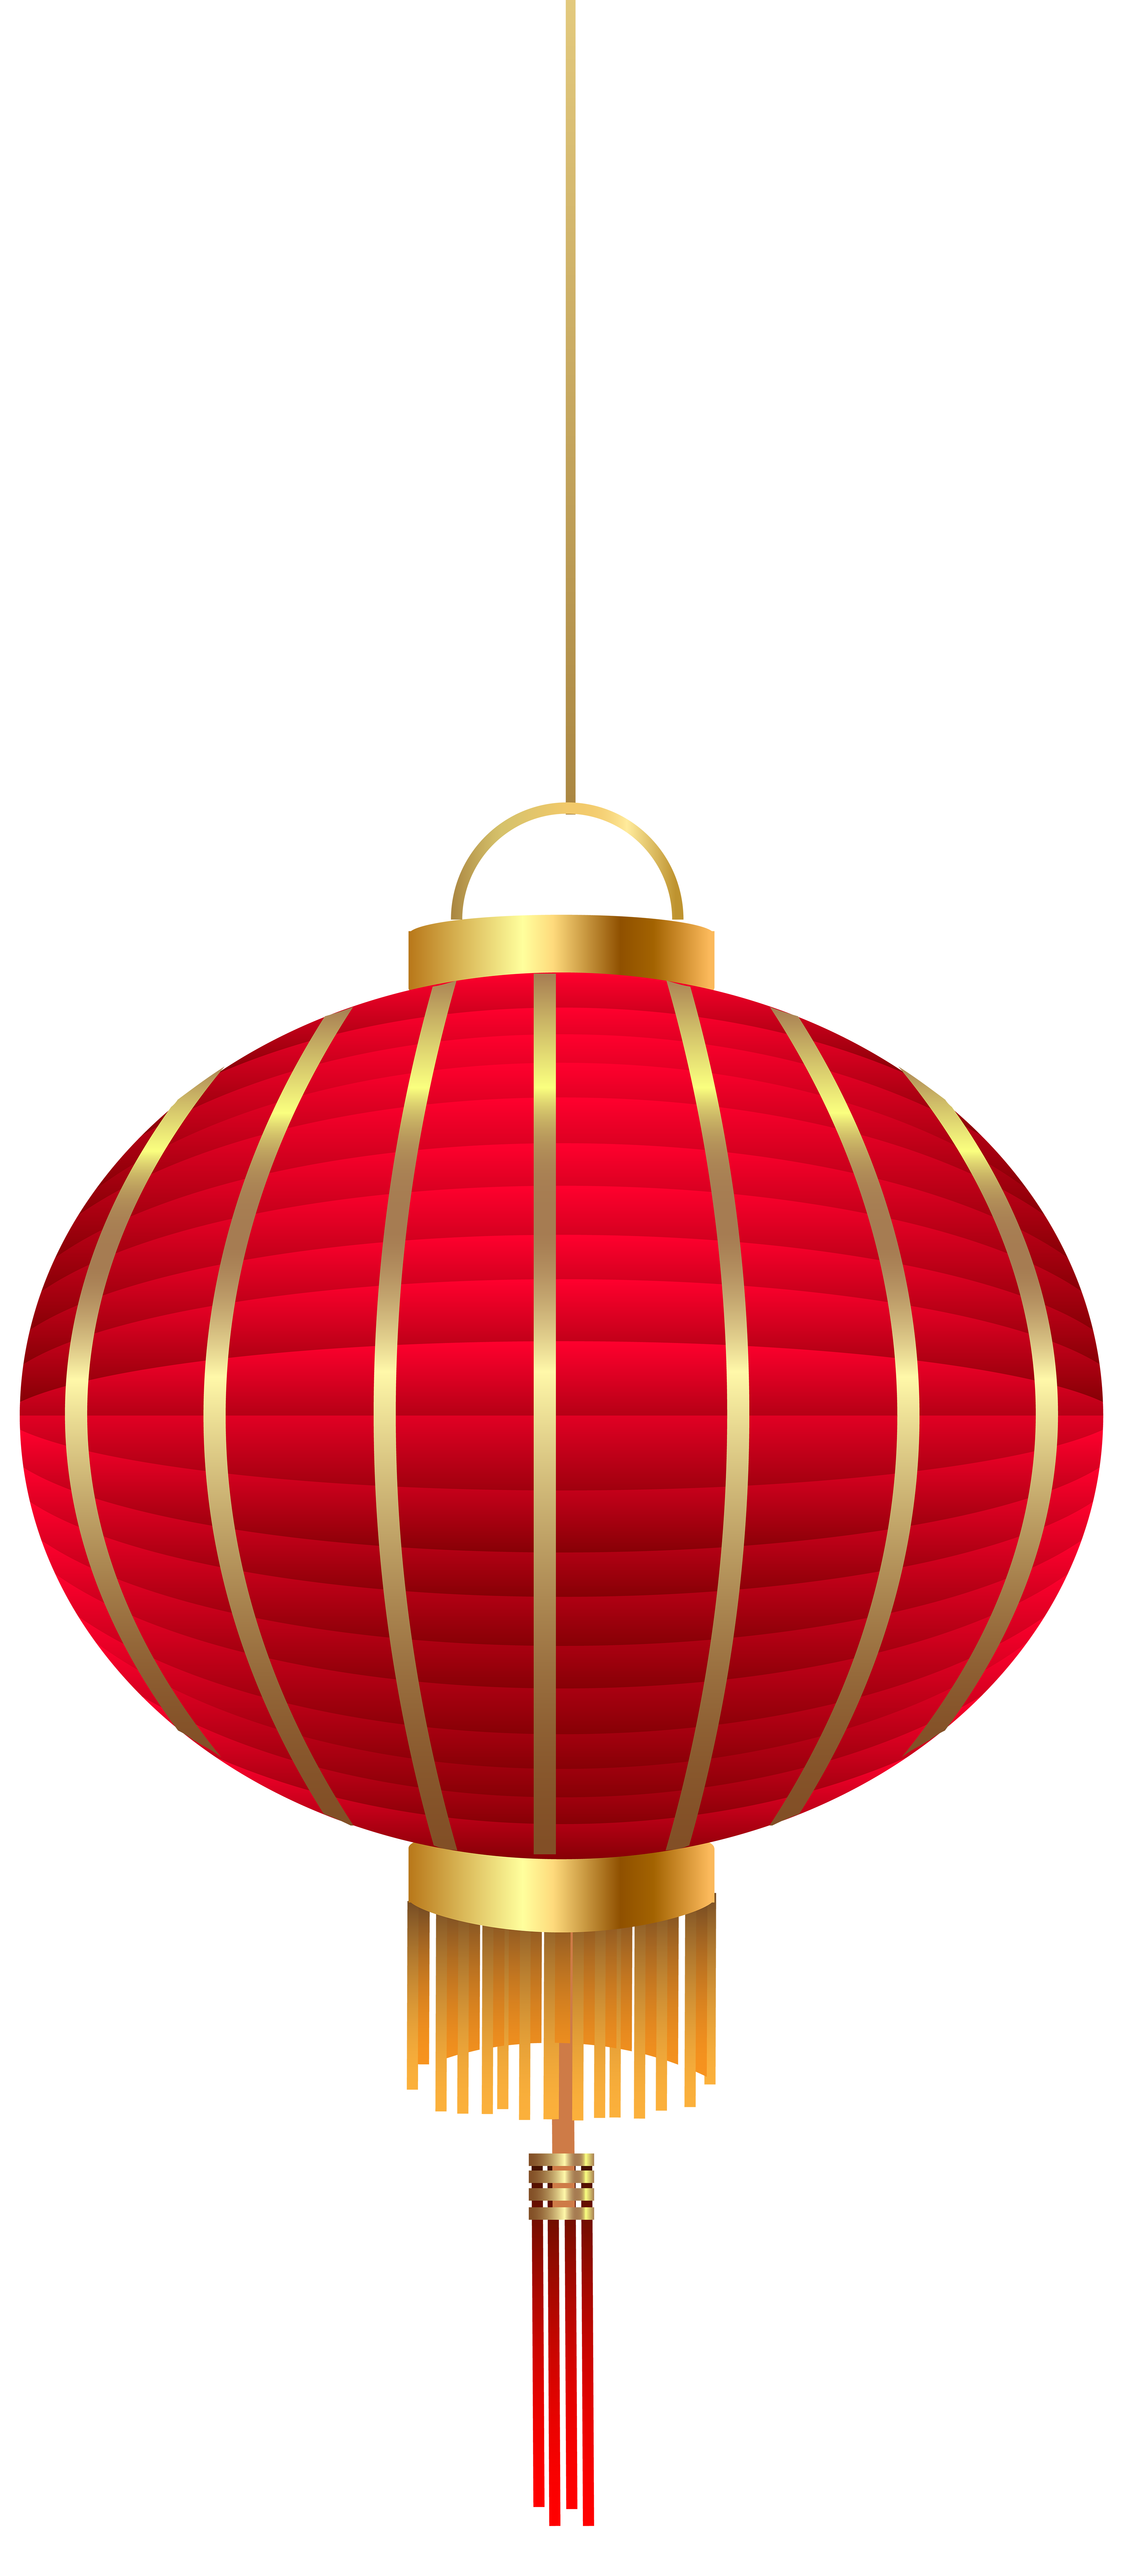 Hanging lantern png clip. Chinese clipart lamp chinese picture black and white